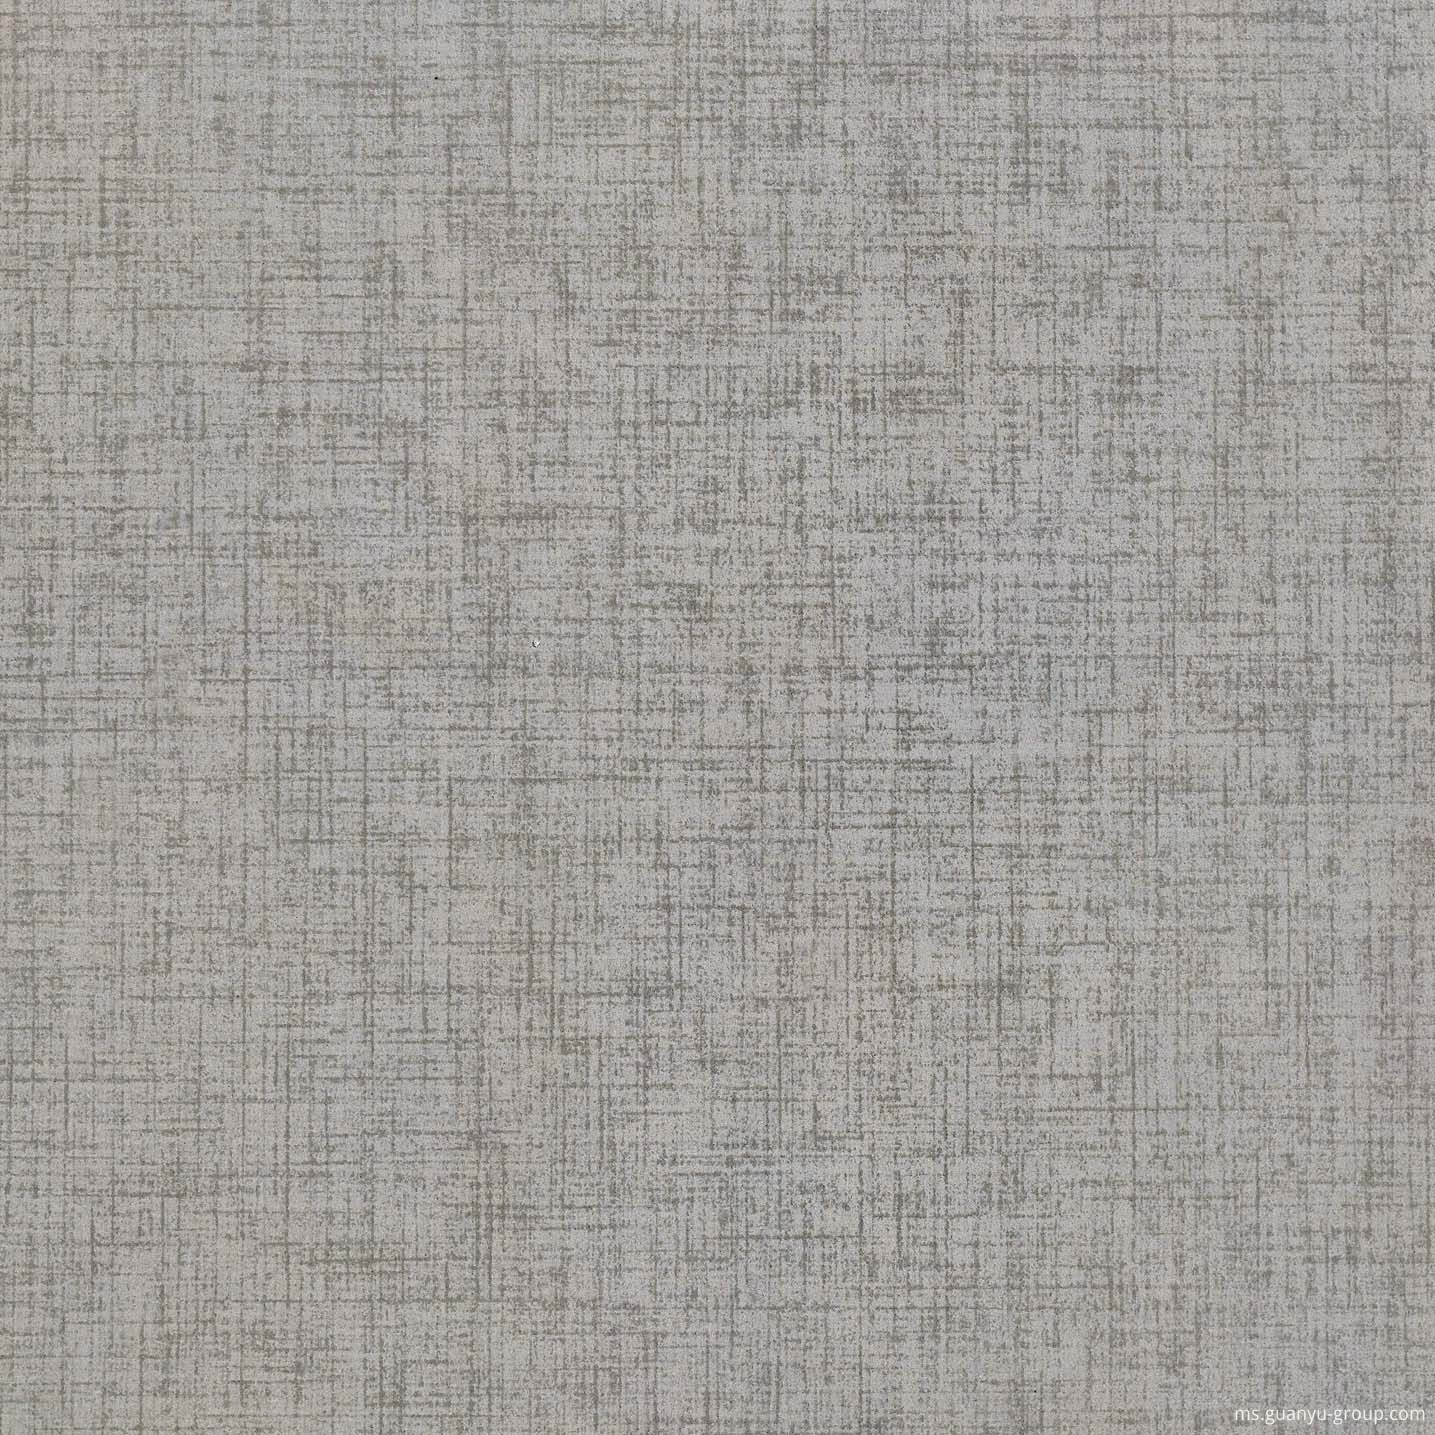 Gray Brocade Rustic Porcelain Floor Tile